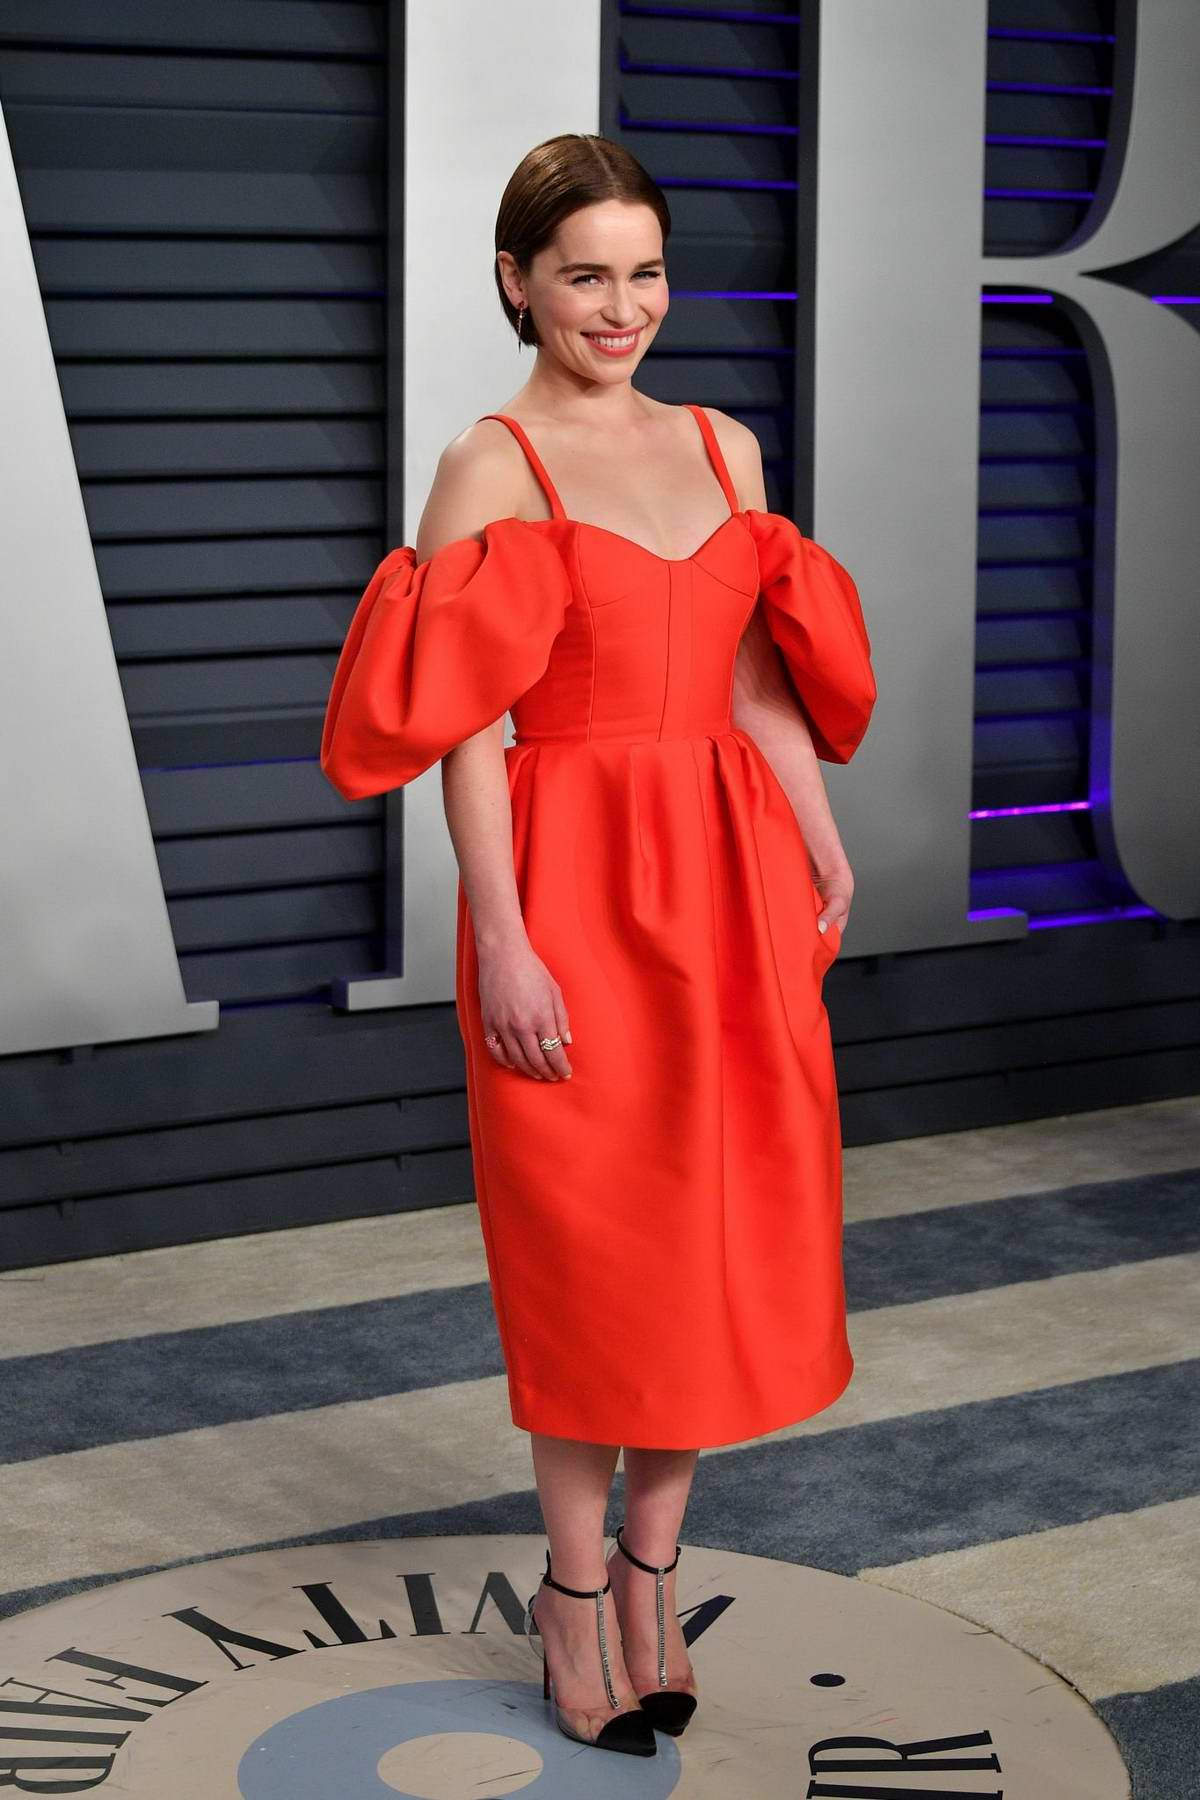 Emilia Clarke attends the Vanity Fair Oscar Party at Wallis Annenberg Center for the Performing Arts in Beverly Hills, California